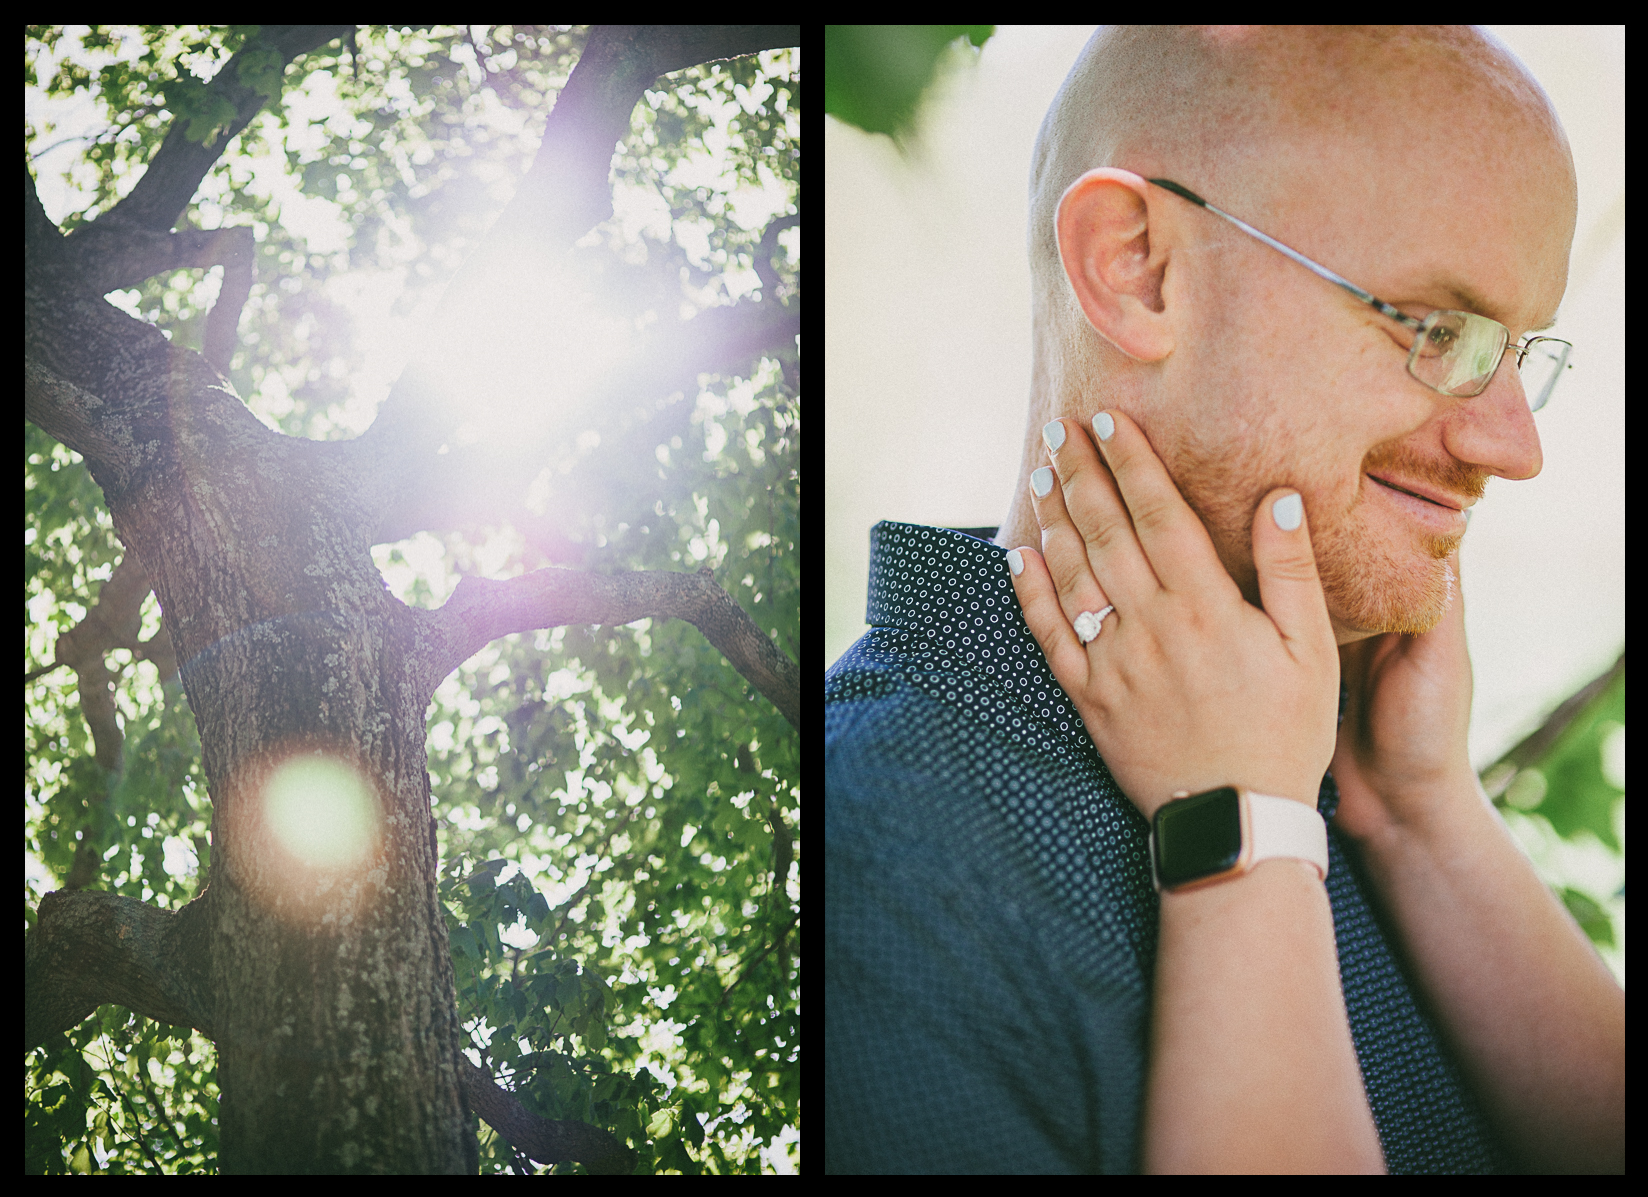 breighton-and-basette-photography-copyrighted-image-blog-jennifer-and-sean-engagement-collage-3.jpg